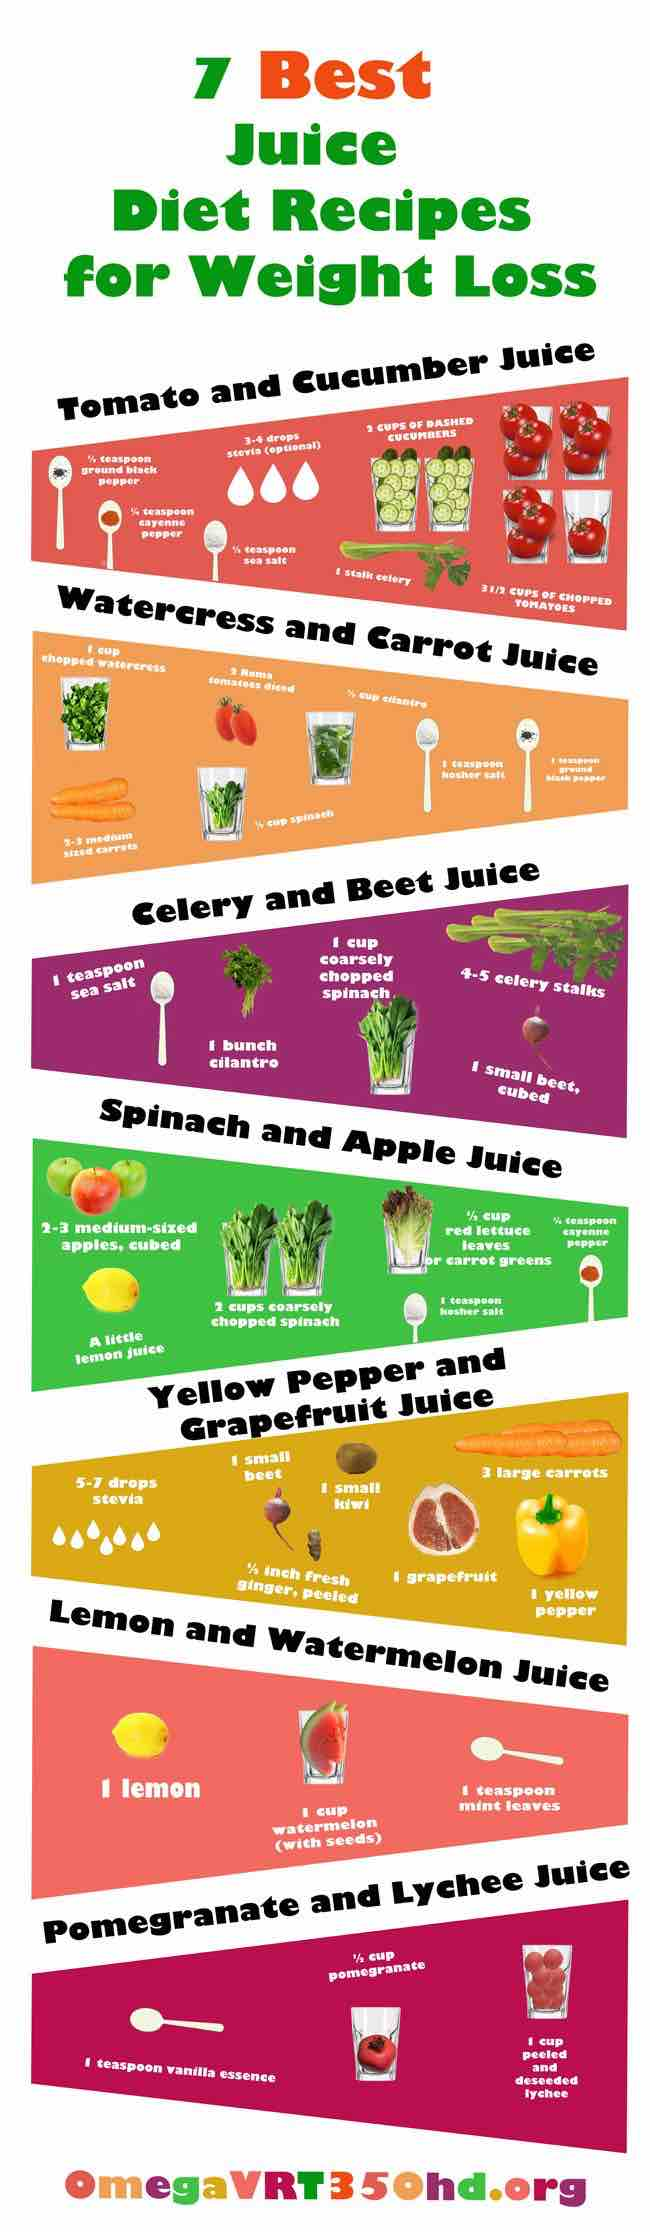 juicing-recipes-17-05052015nz